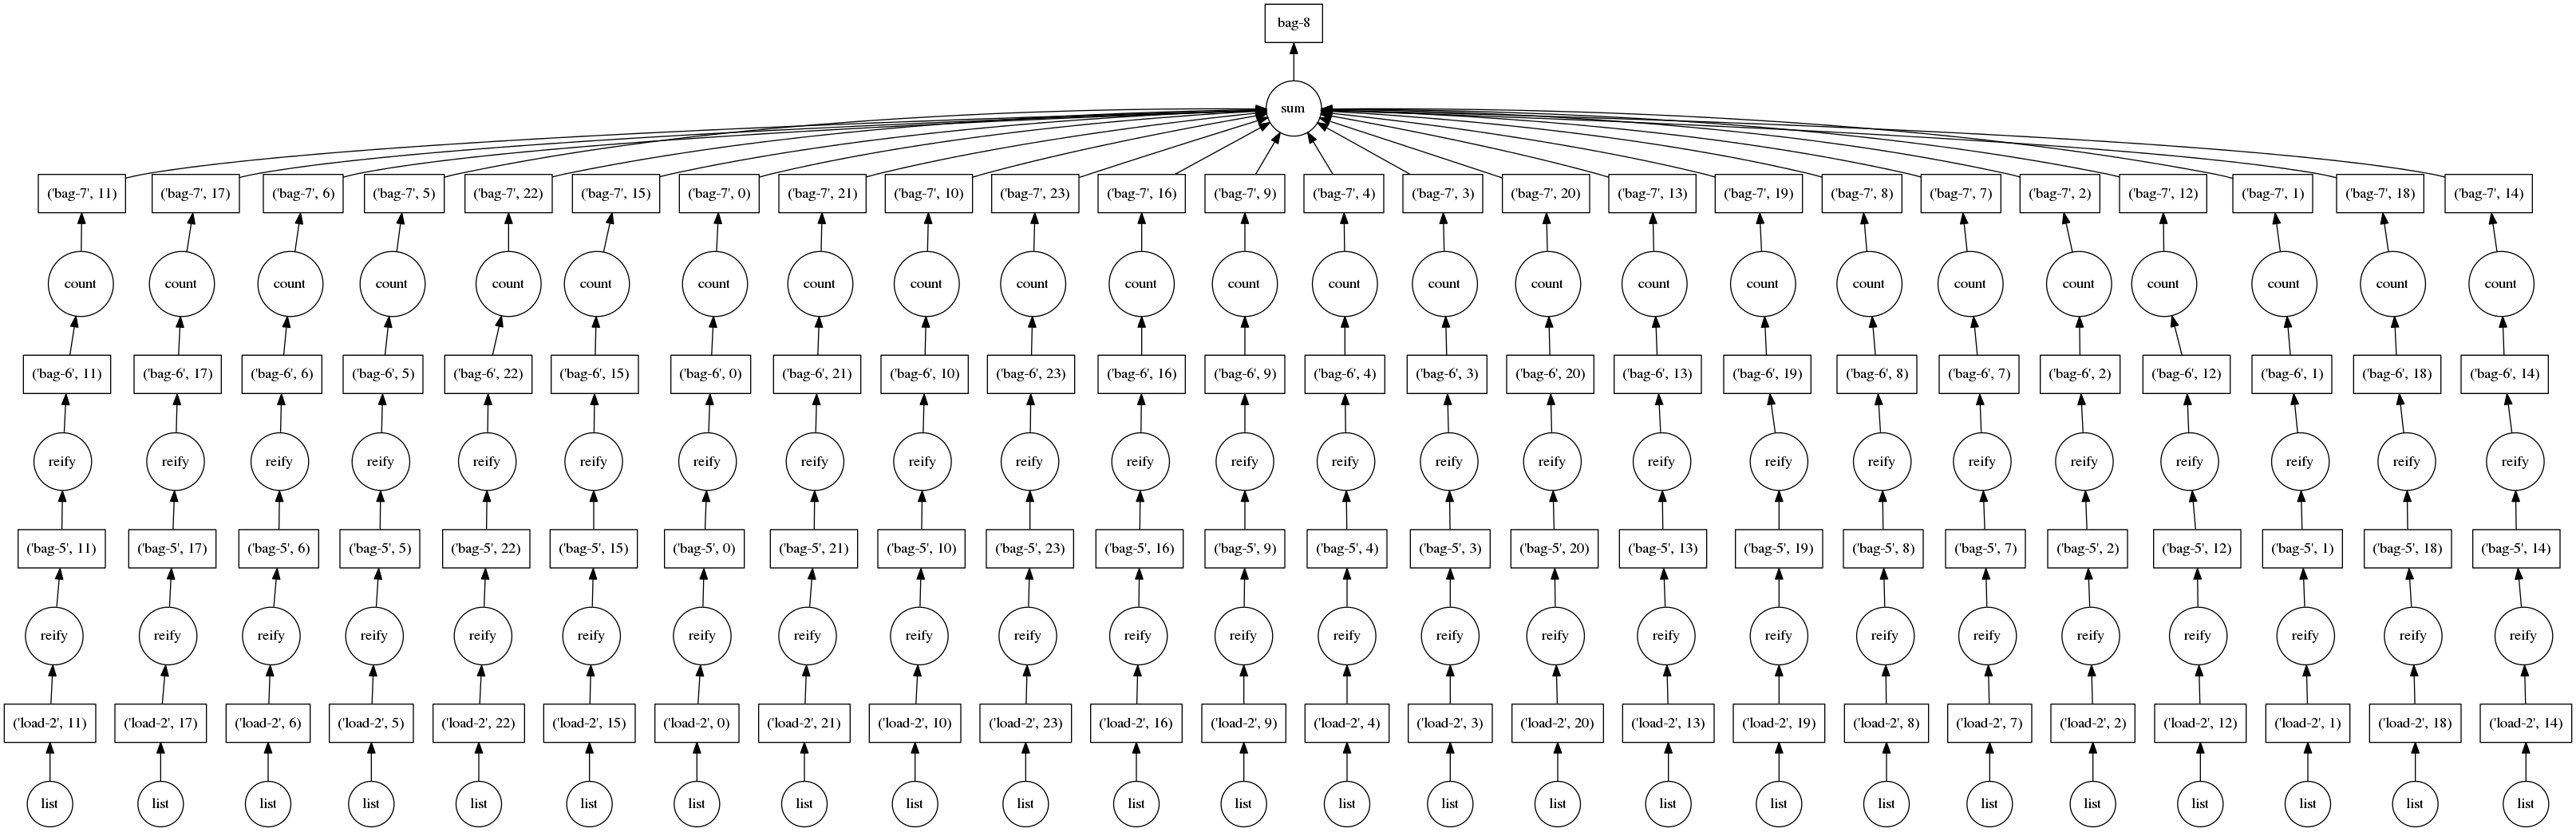 Embarrassingly parallel dask graph